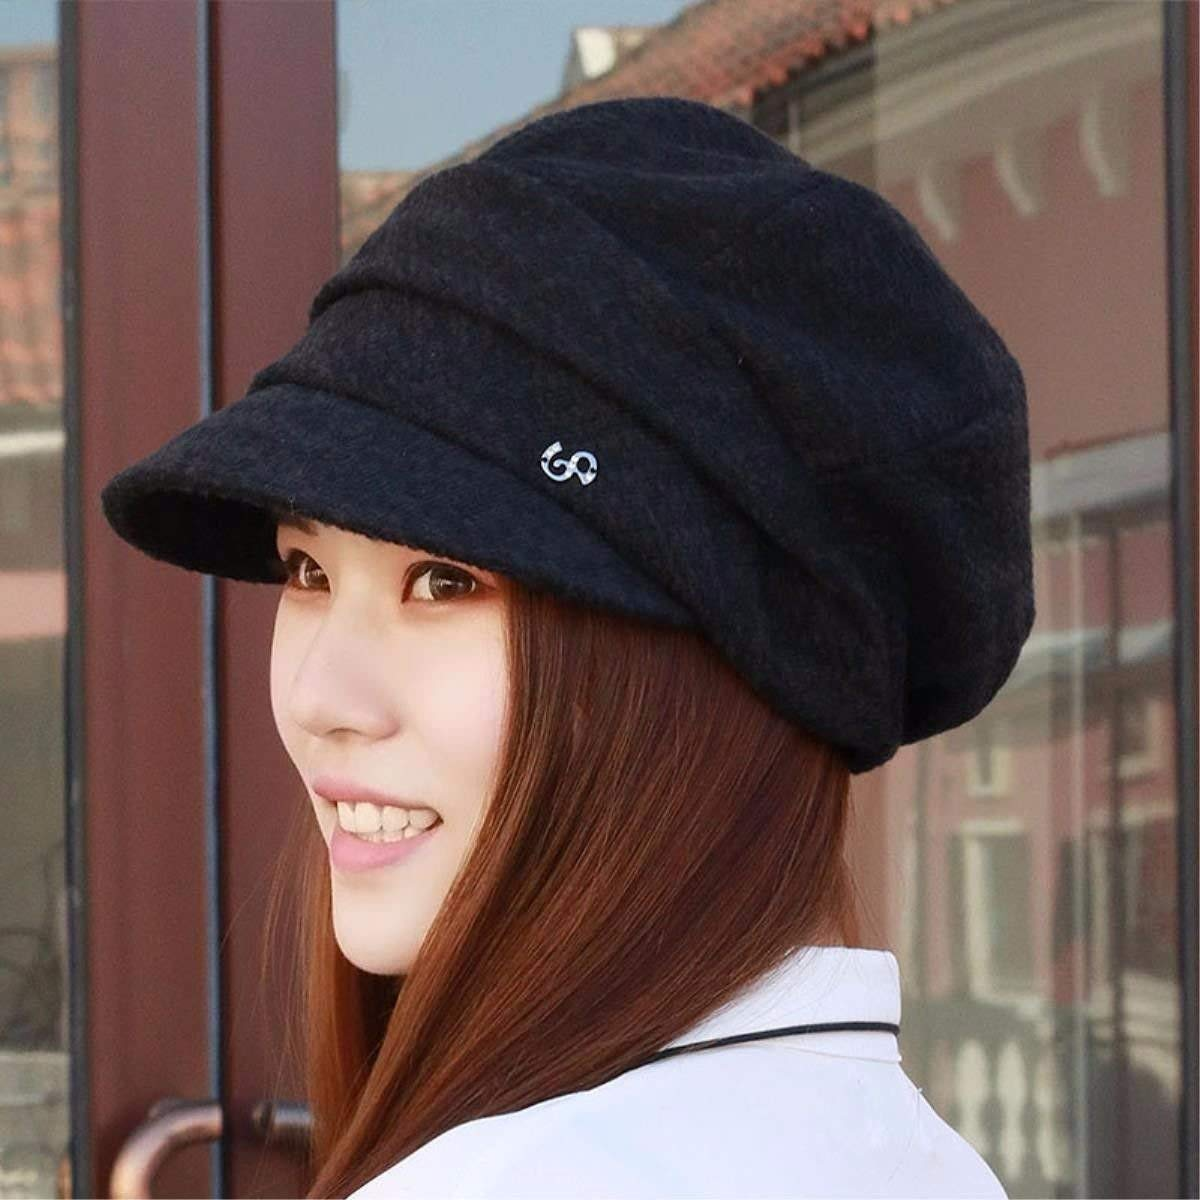 fe48fd2cee7 LONFENN Ladies Women Hats Autumn And Winter Fashion Beret Cap Fashion Hat  Painter Cap Mother Cap